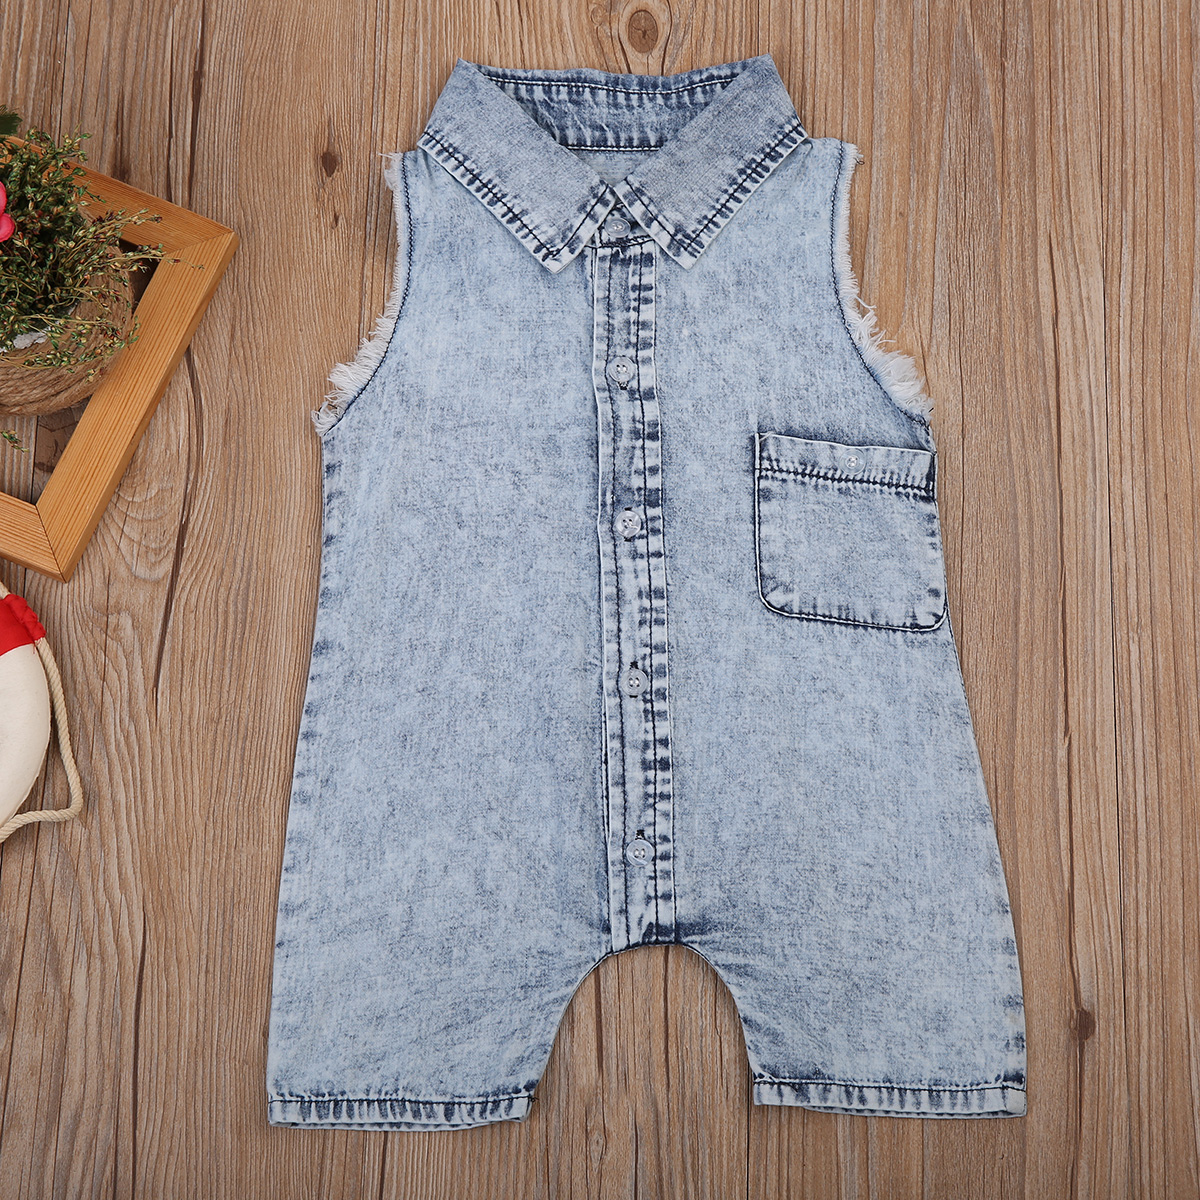 19a22f50430 Pudcoco Baby Boys Denim Rompers With Turn Down Collar Tank Romper Overall  Sleeveless With Pocket-in Rompers from Mother   Kids on Aliexpress.com